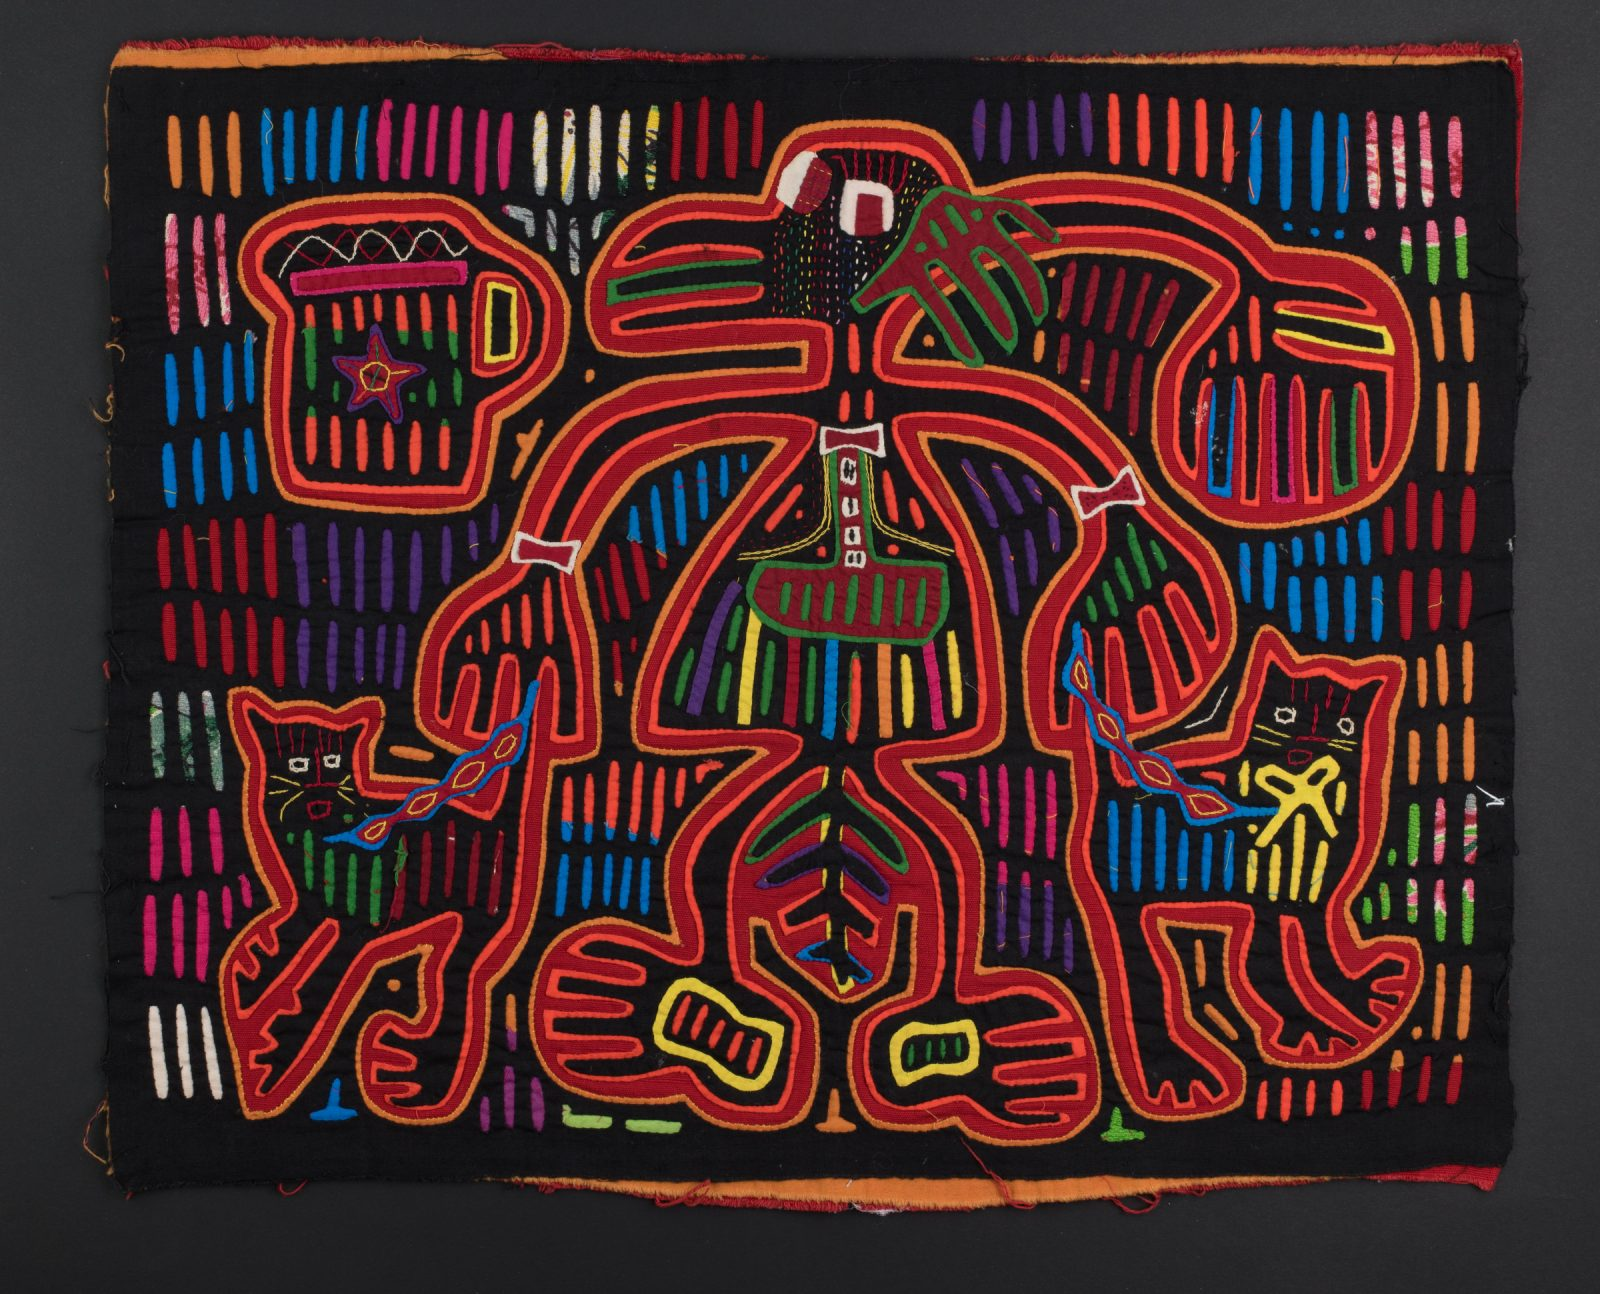 Bullwinkle J. Moose Mola Panel , c. 1960s. Republic of Panamá, Guna y a l a Comarca, Guna people, Gardi islands. Cotton; reverse appliqué, appliqué, embroidery; 38 x 47 cm. Denison Univ ersity, Denison Museum, Gift of Dr. Clyde Keeler, 1972.328. © Denison Museum, Denison University.